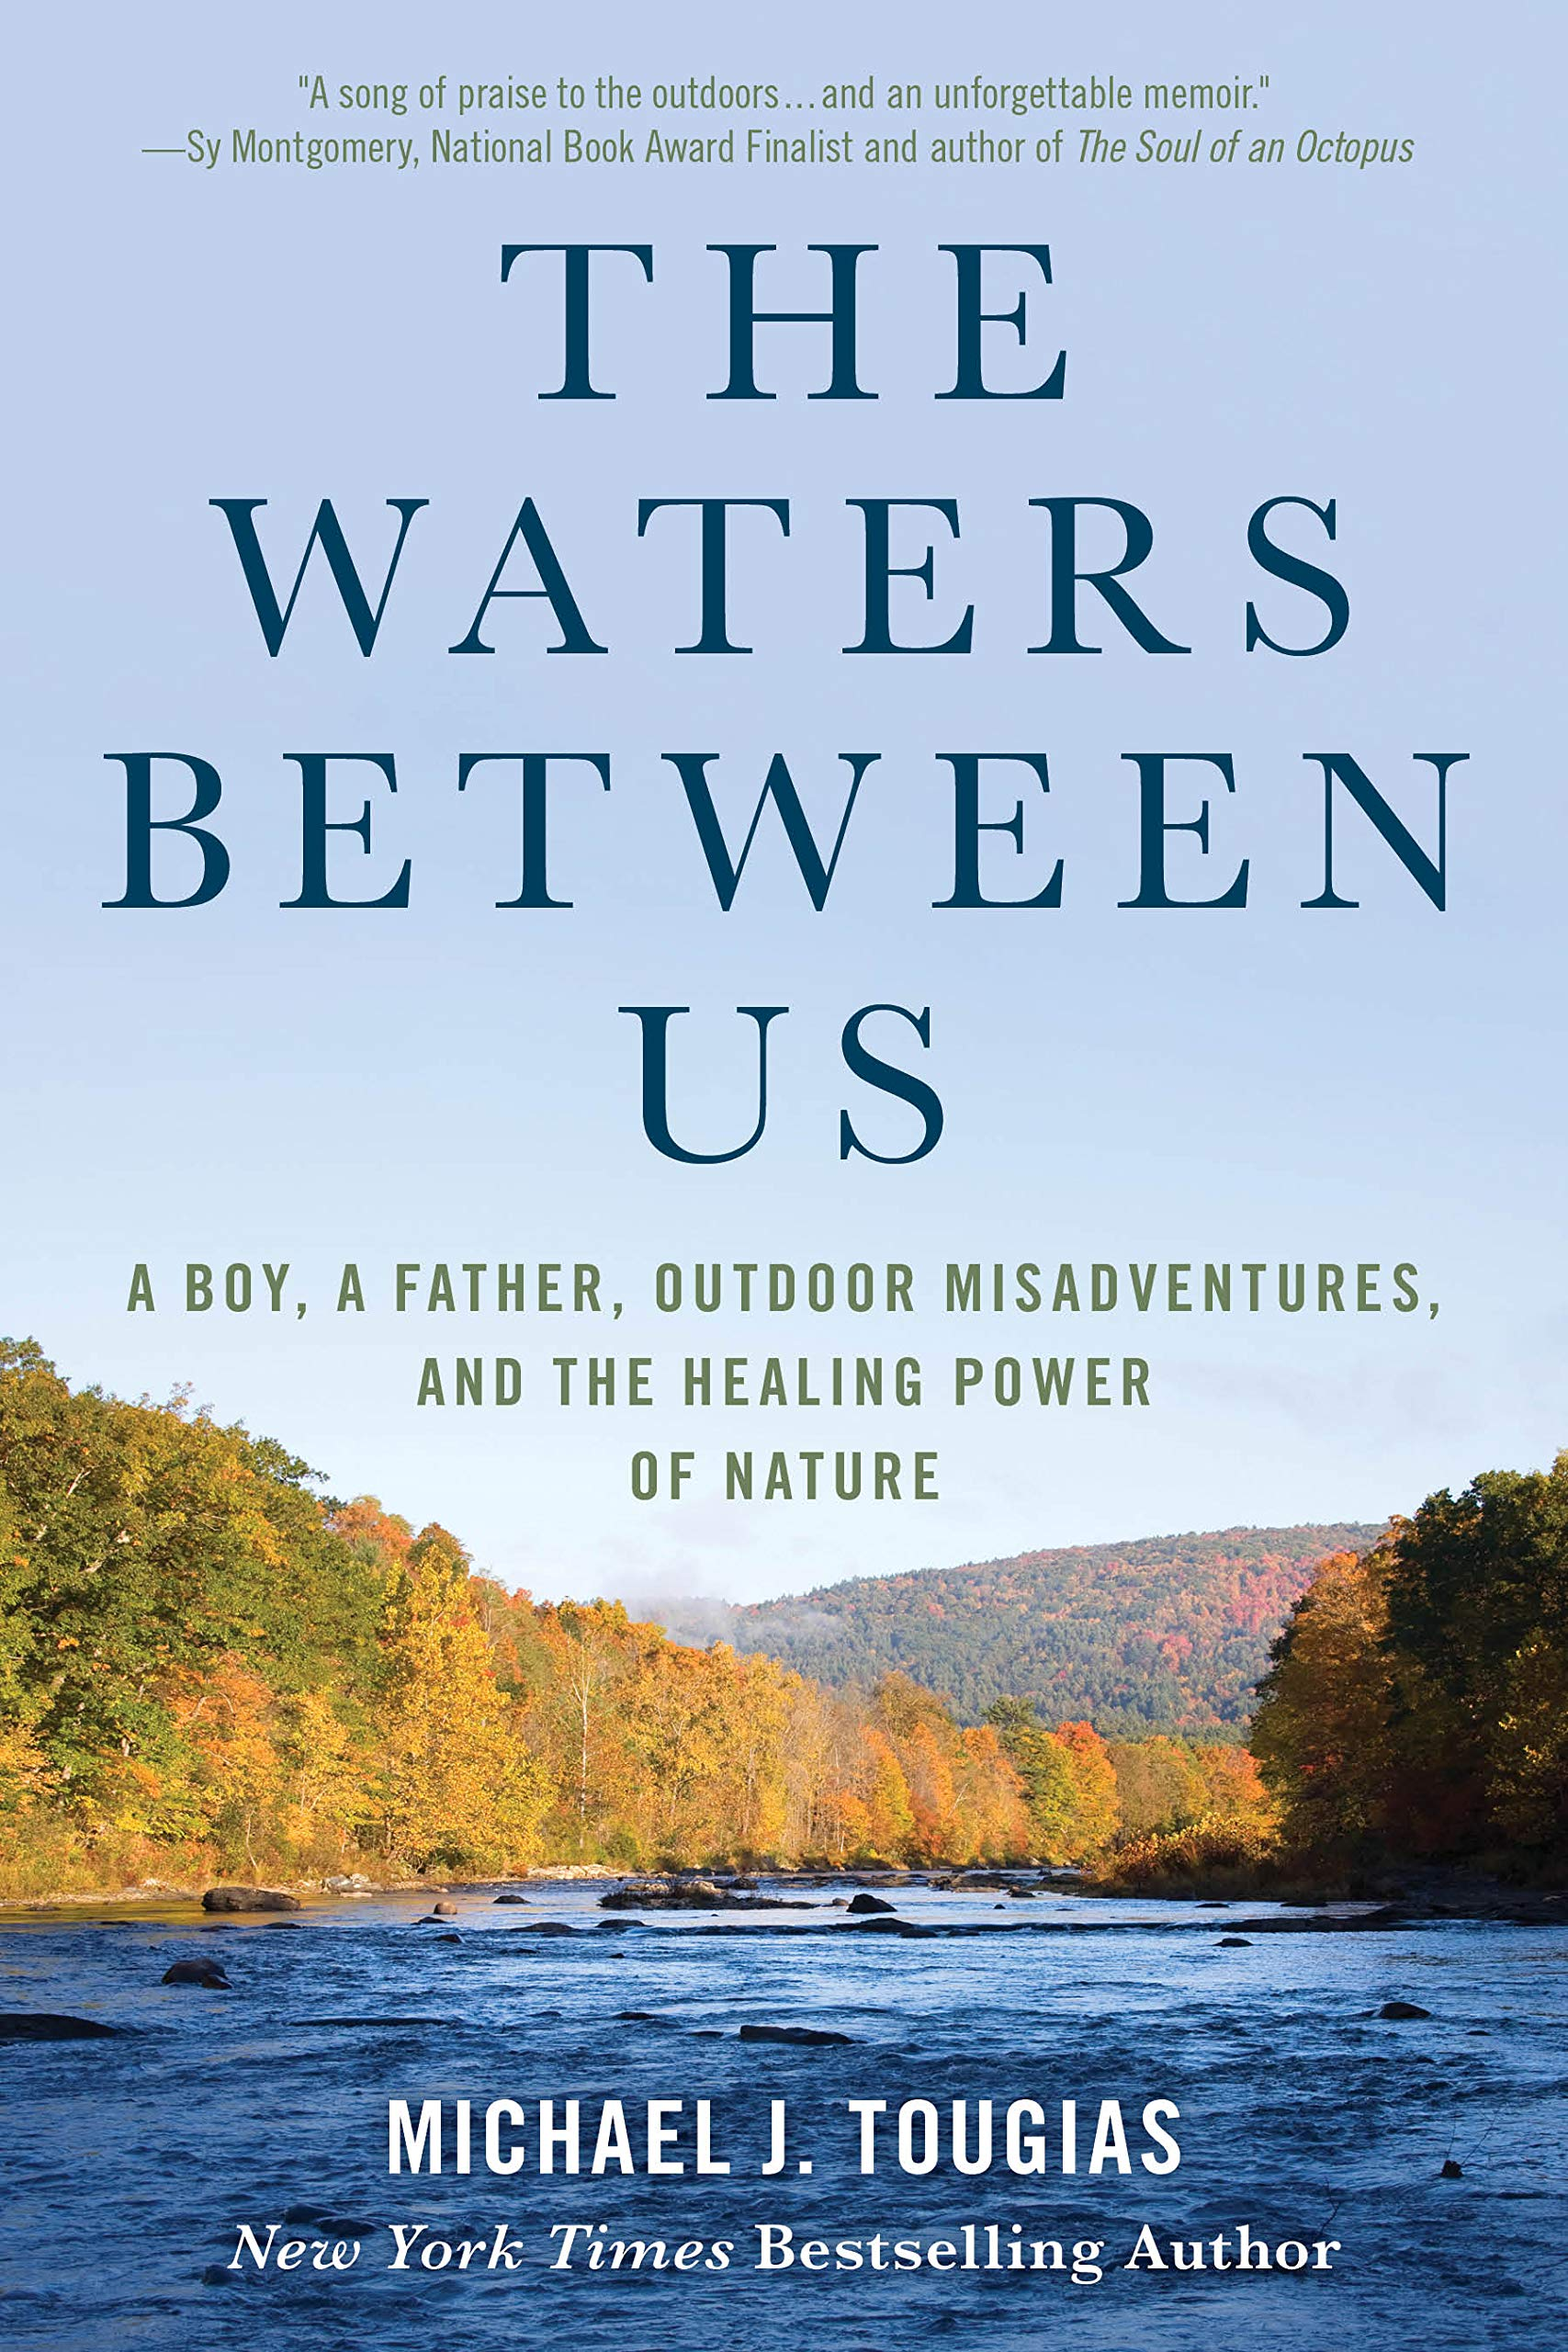 The Waters Between Us A Boy, a Father, Outdoor Misadventures and the Healing Power of Nature